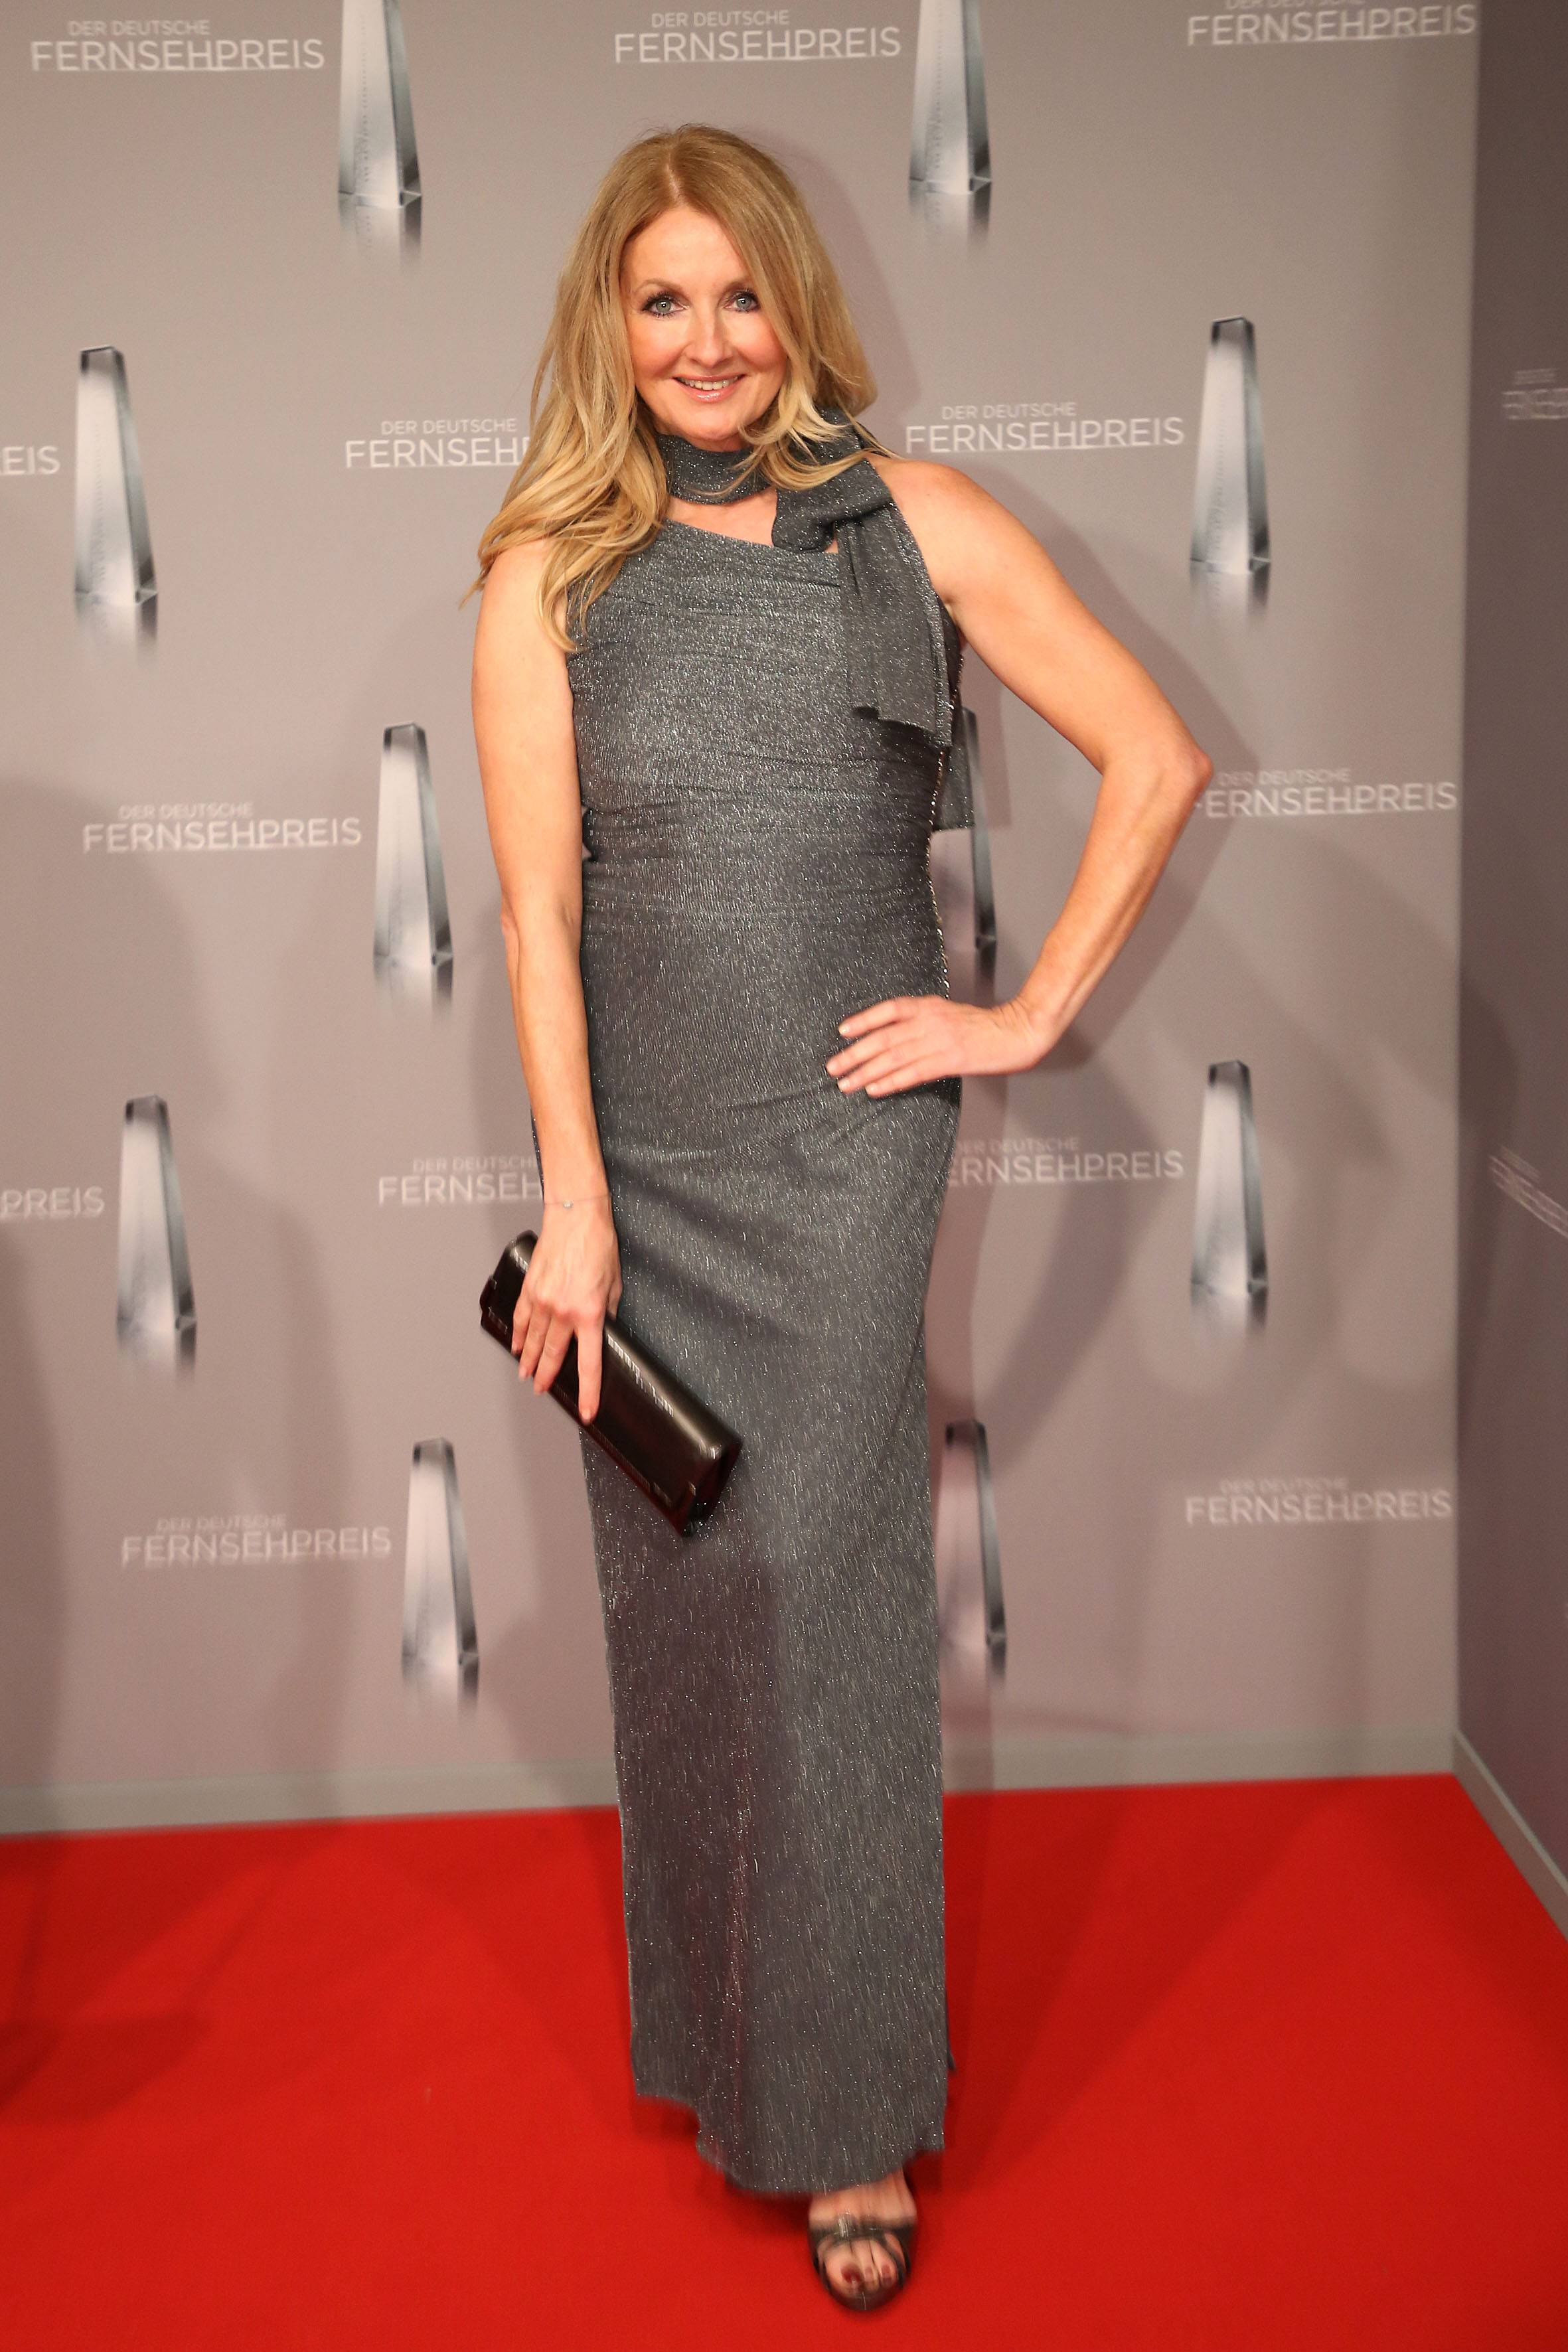 Frauke Ludowig bei der Verleihung Deutscher Fernsehpreis am 02.02.17 in Düsseldorf Deutscher Fernsehpreis Verleihung 2017 in Duesseldorf PUBLICATIONxINxGERxSUIxAUTxONLY Frauke Ludowig at the award Ceremony German Television at 02 02 17 in Dusseldorf German Television award Ceremony 2017 in Duesseldorf PUBLICATIONxINxGERxSUIxAUTxONLY